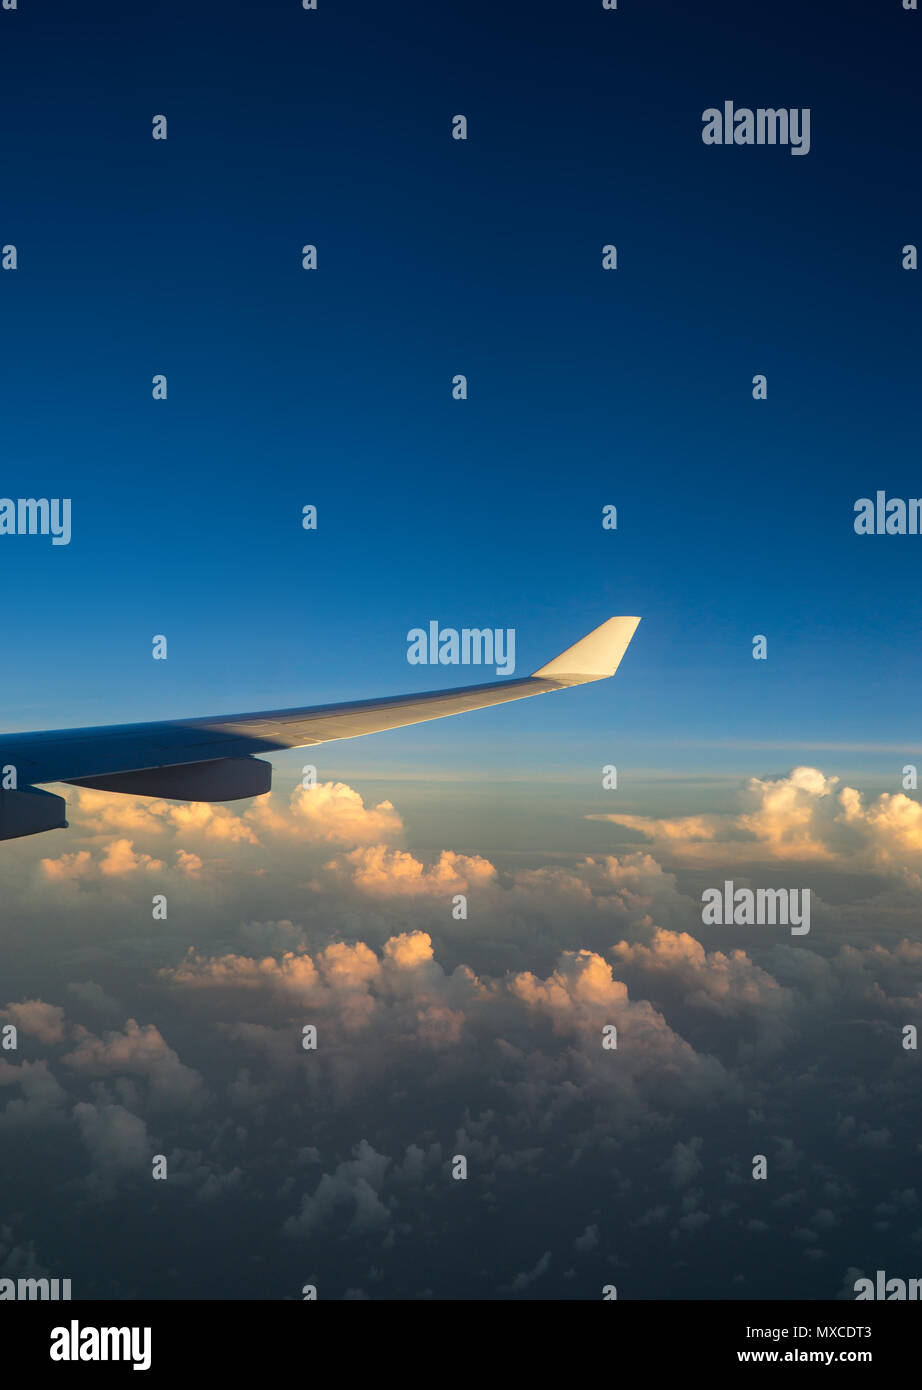 View out of airplane window with clouds at sunset and airplane wing. Stock Photo